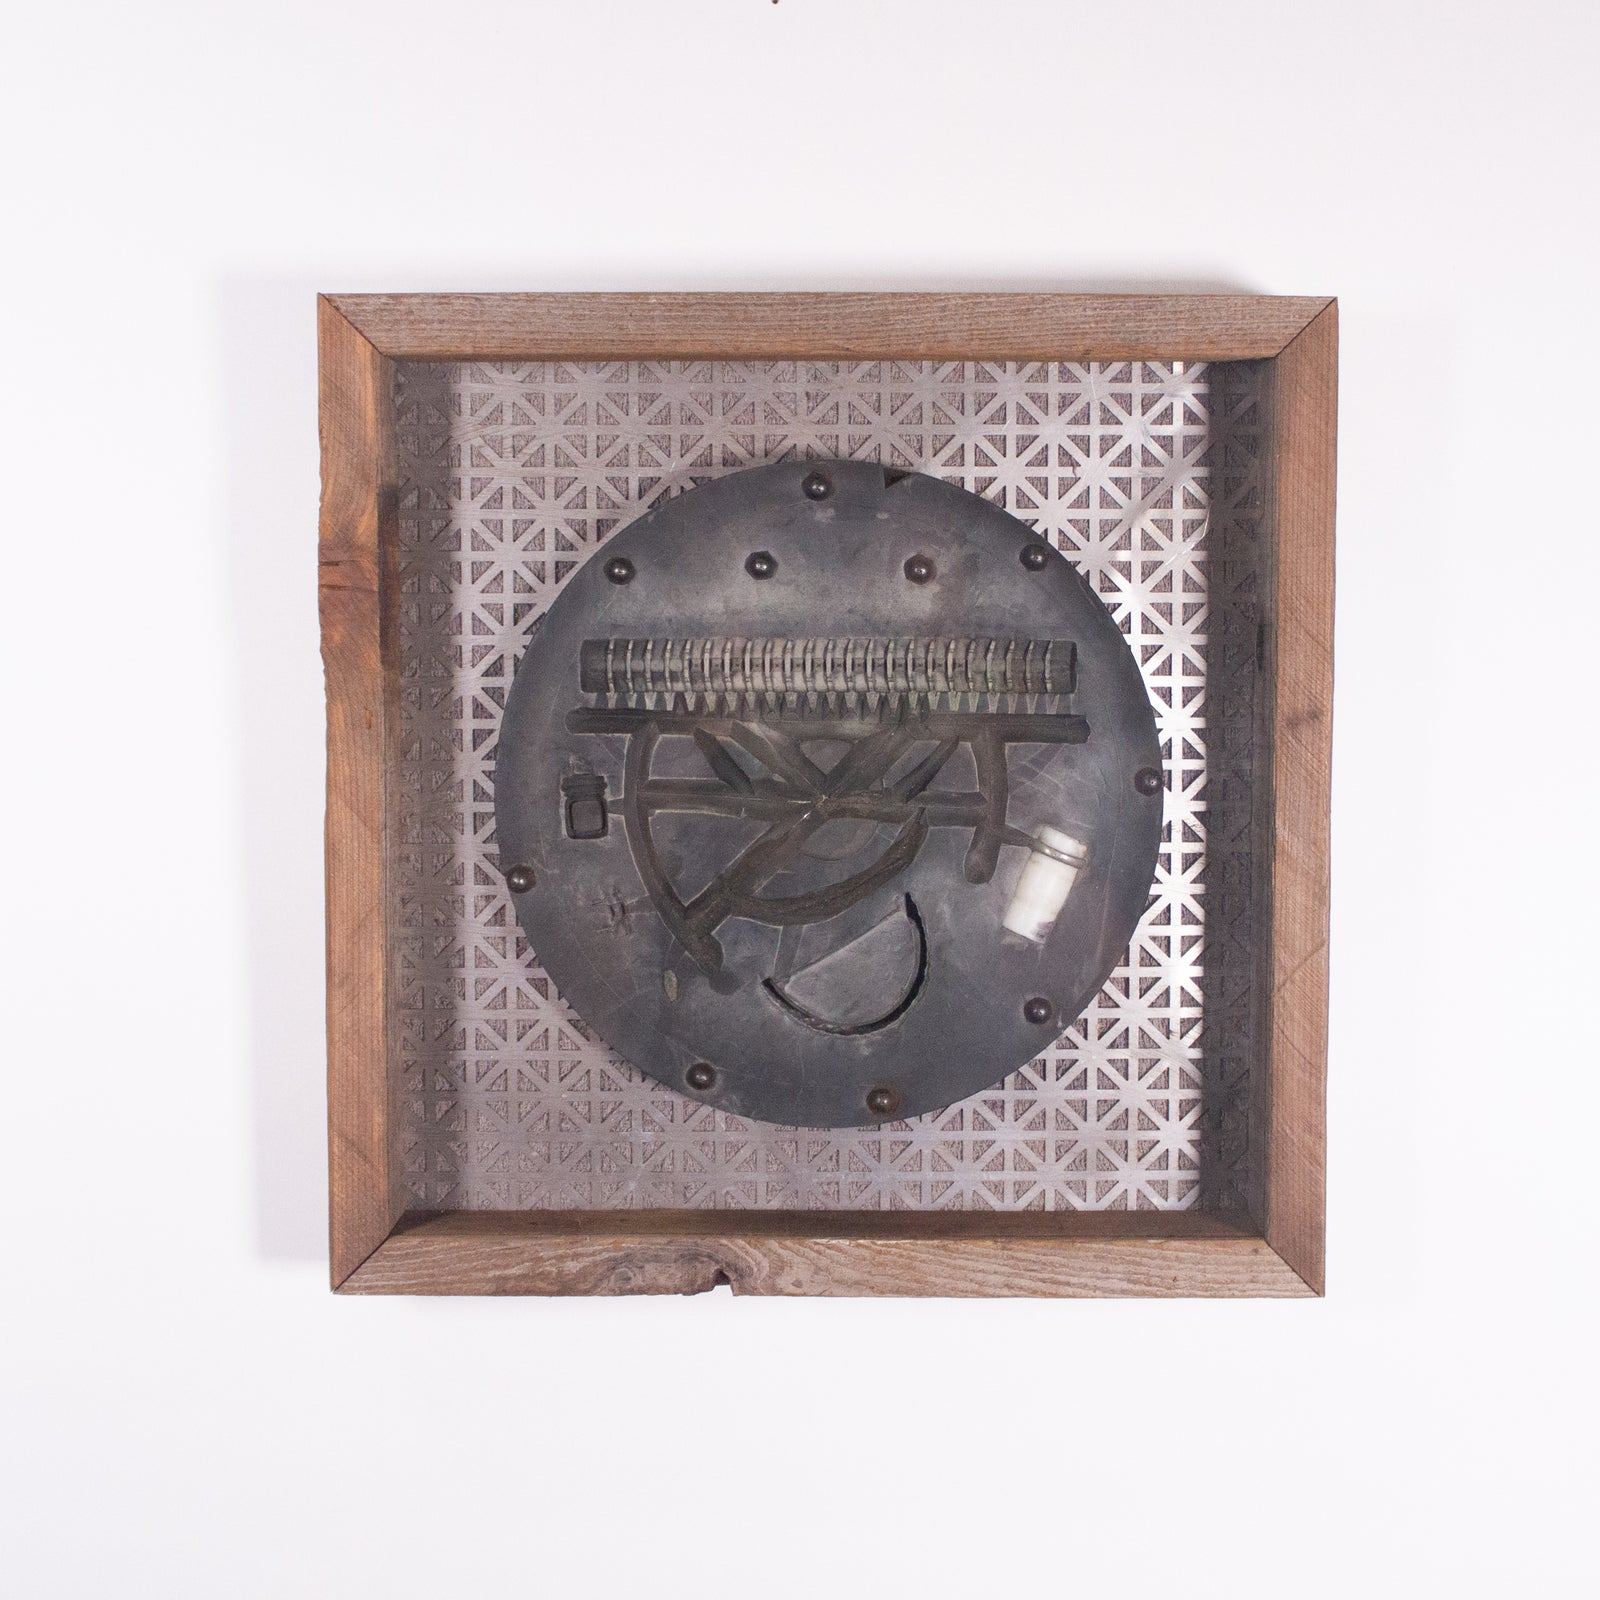 Jewelry Mold in Lightbox Frame